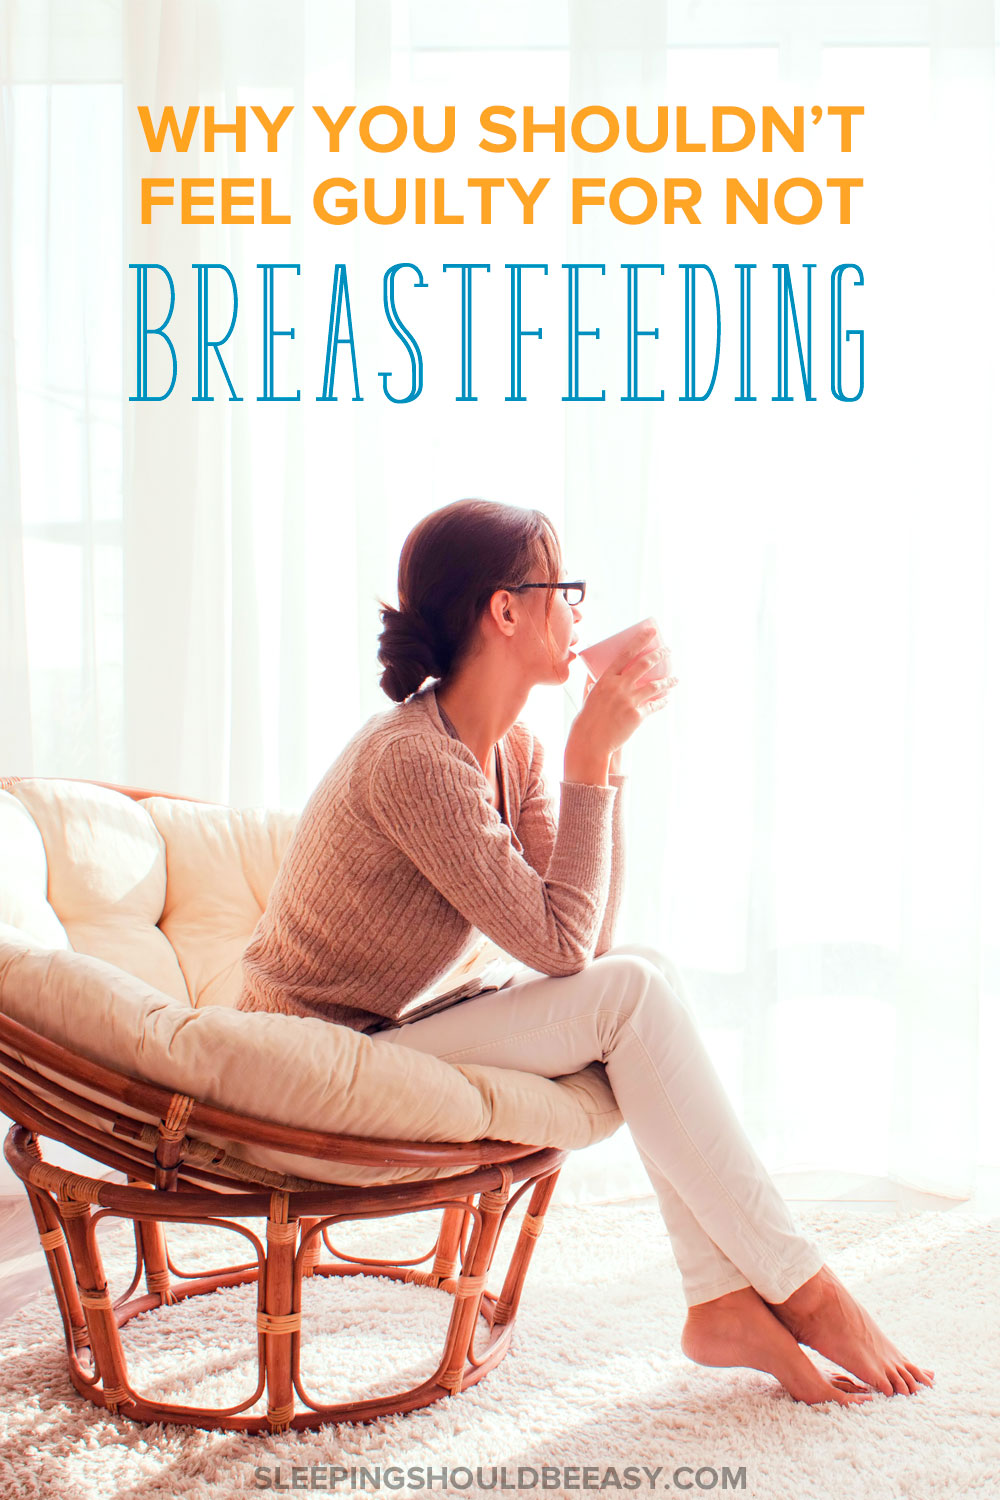 With research supporting breastfeeding, it's easy to feel guilty if you can't or decide not to. Learn why you shouldn't feel guilty for not breastfeeding.